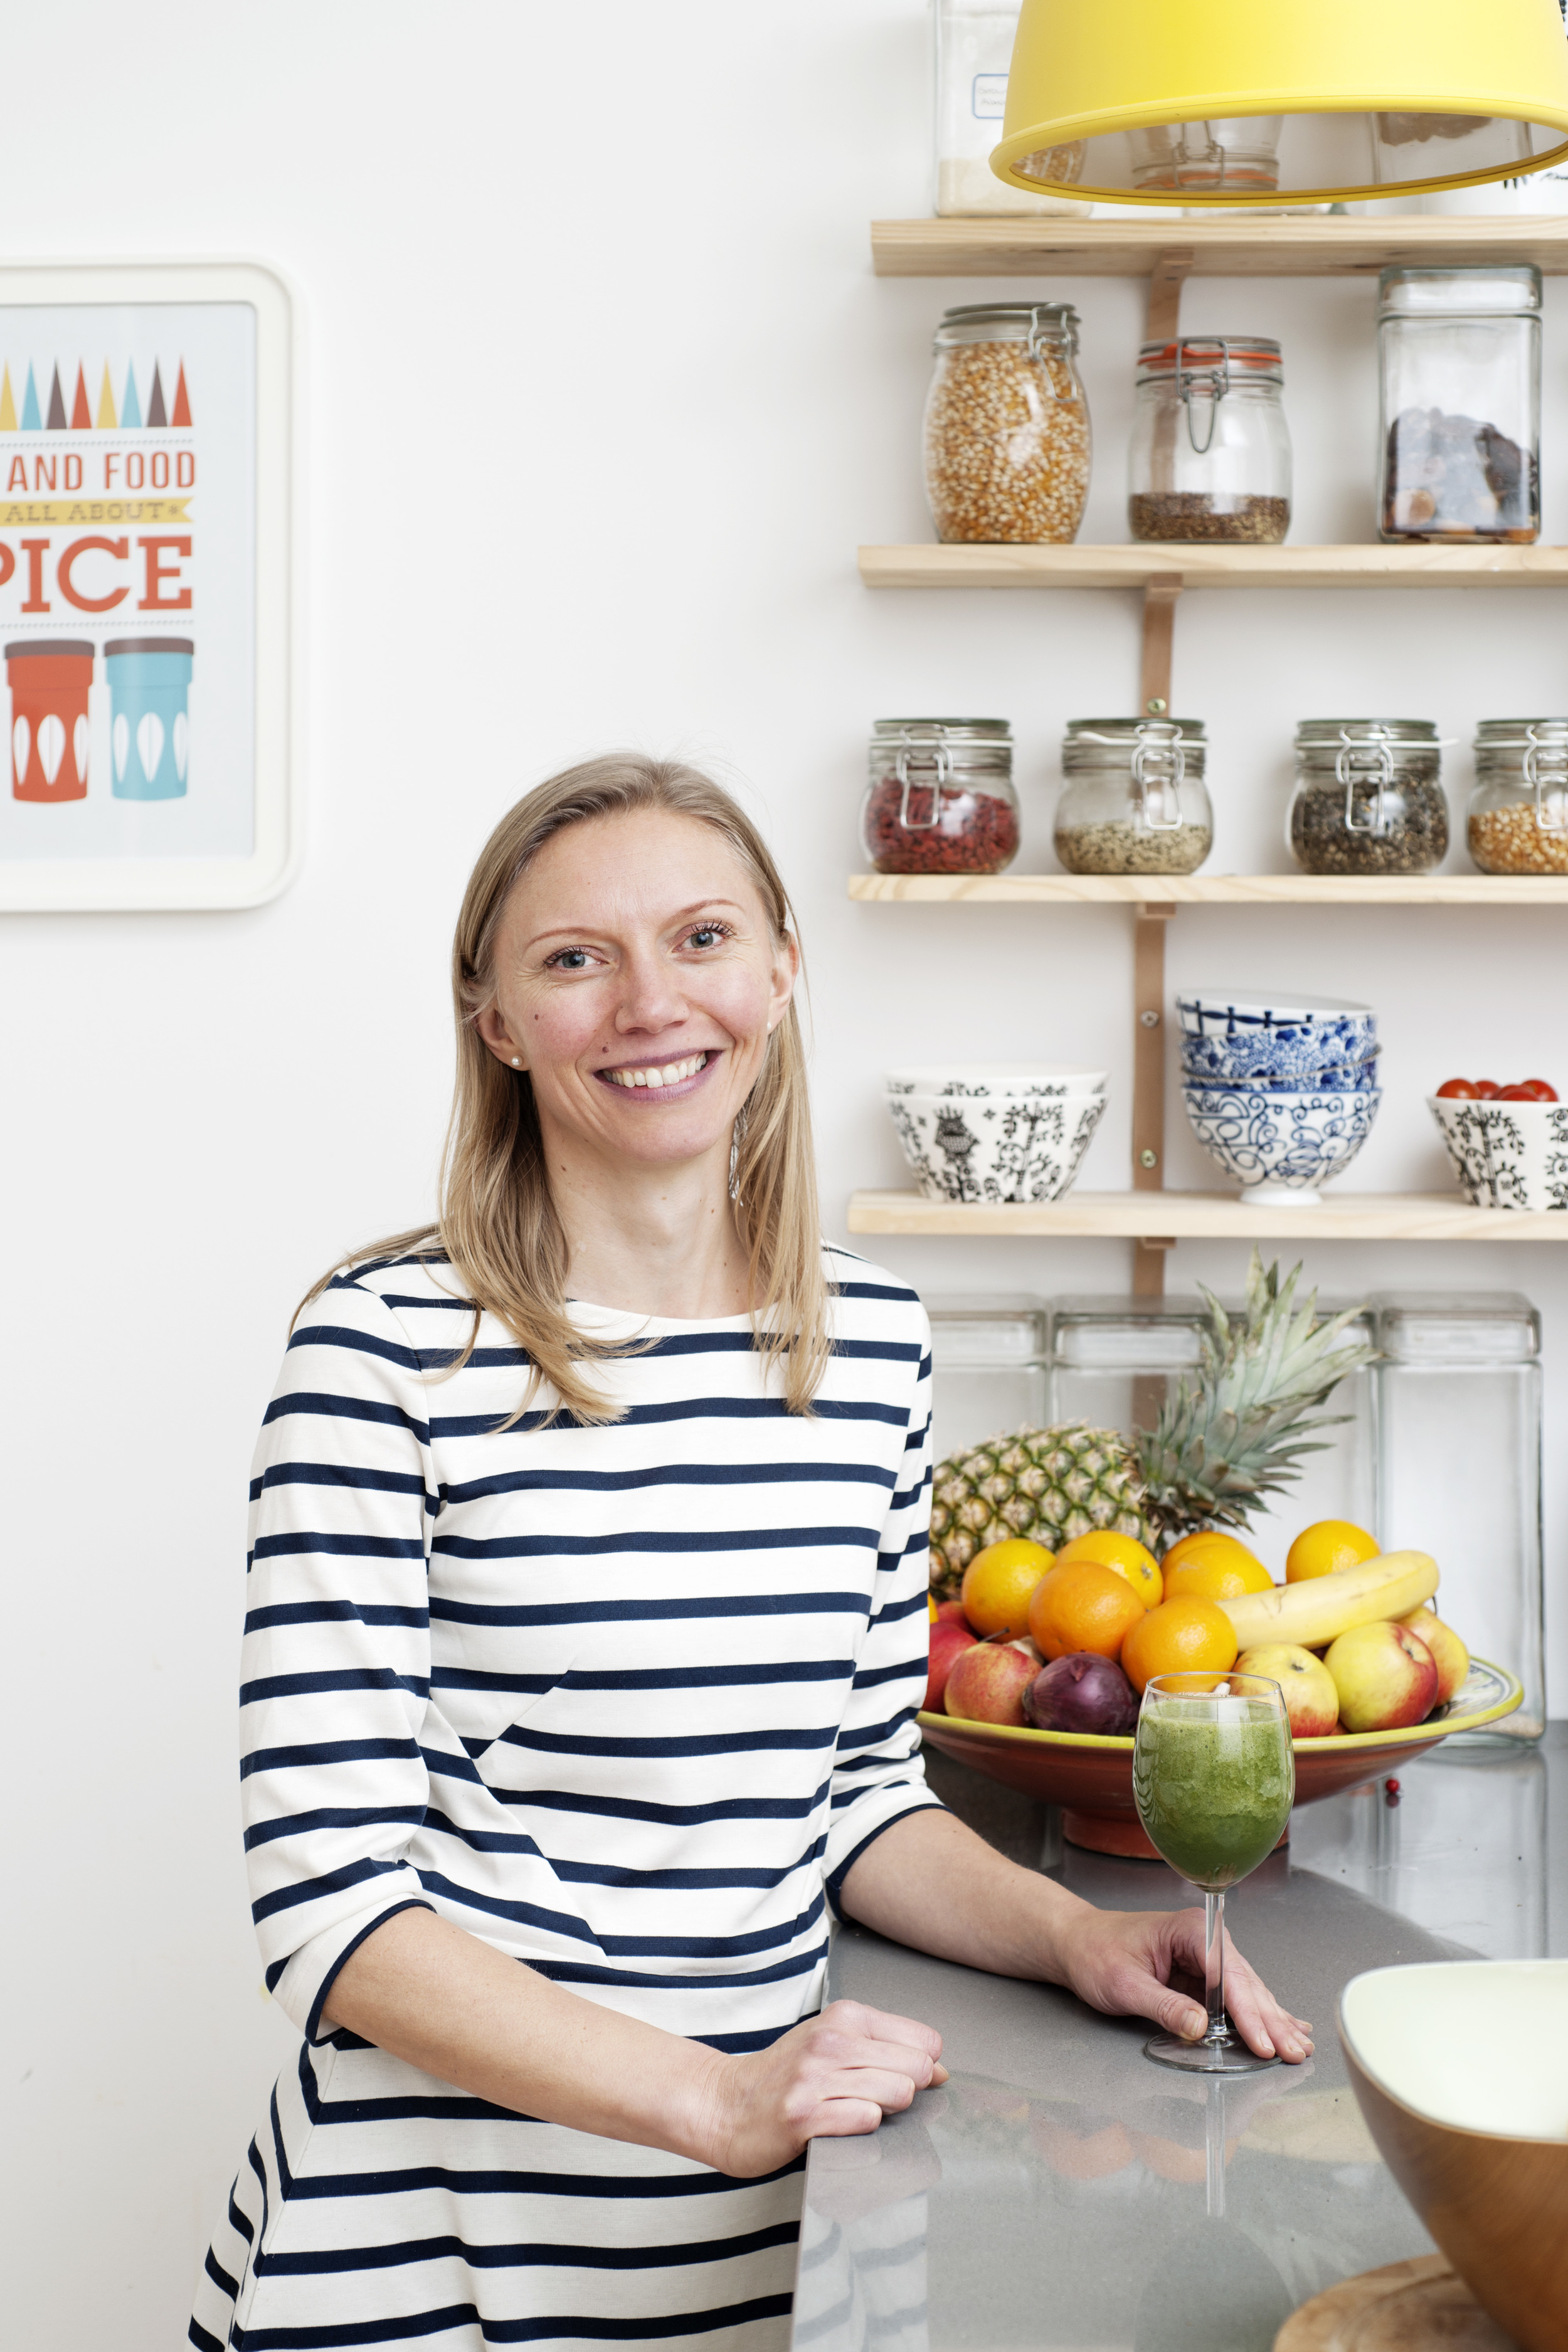 Hi! I'm Sanna Sumner,  a qualified nutritional therapist. My passion is to educate and inspire women to transform their health through practical and personalised nutritional advice. I help my clients to discover nutritious food and adopt a healthier lifestyle through simple and easy-to-follow eating plans and positive lifestyle changes.